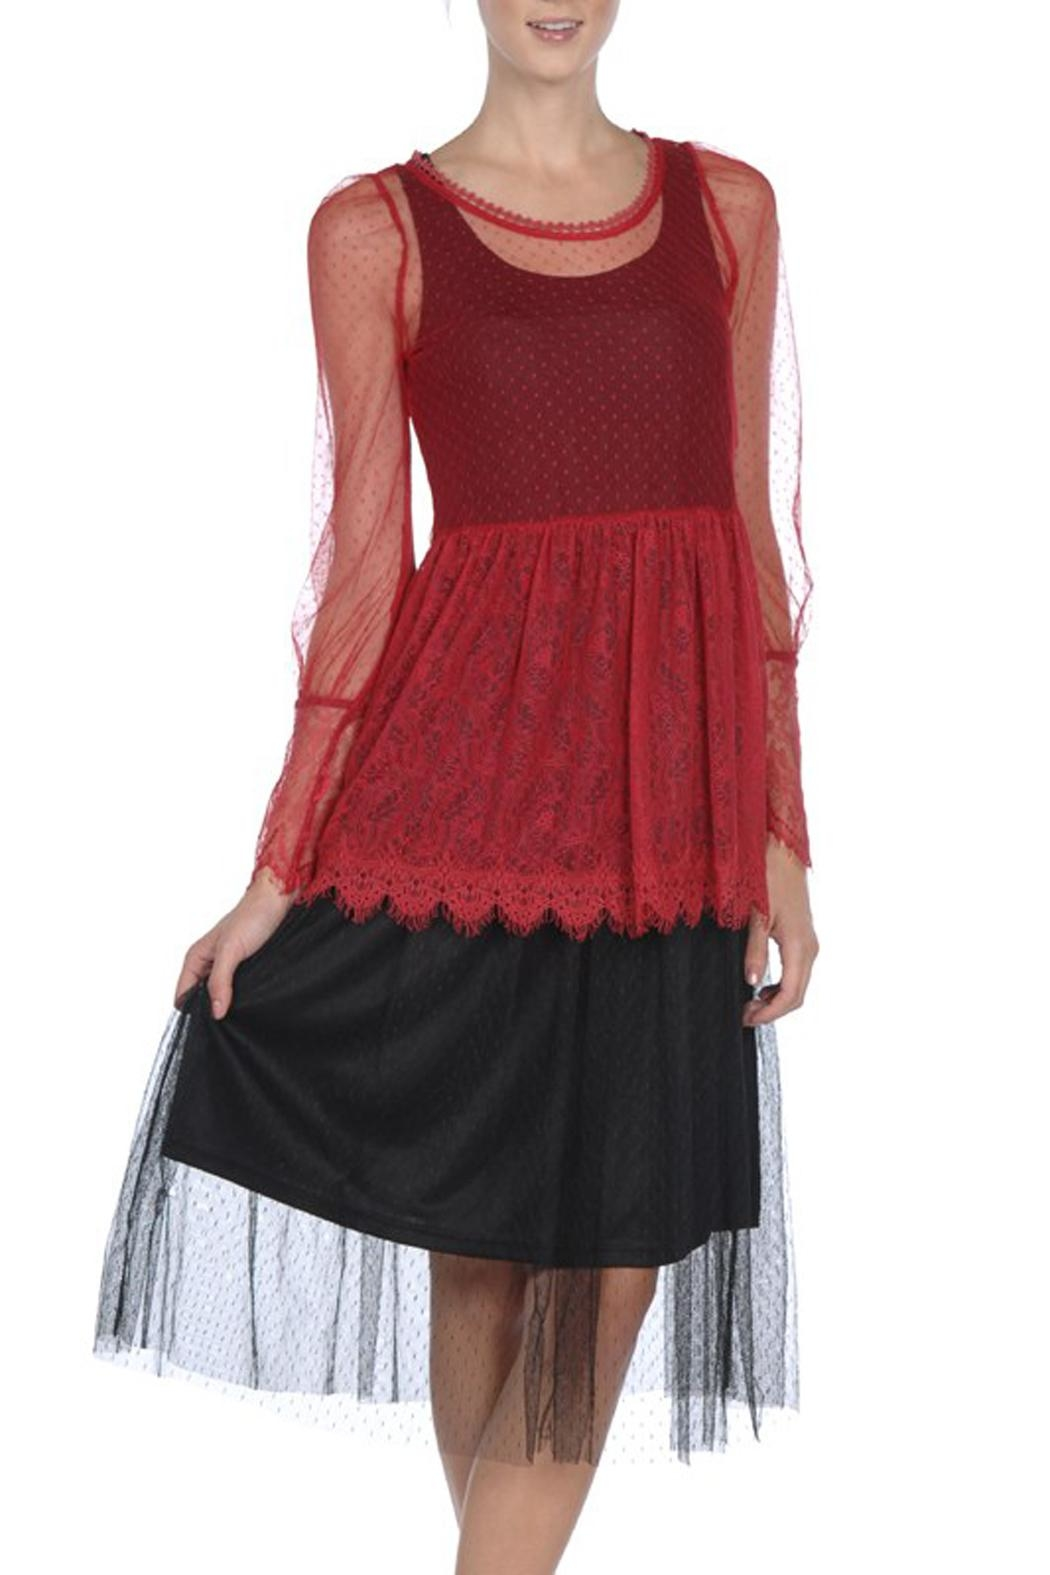 The Vintage Valet Red Lace Top - Main Image